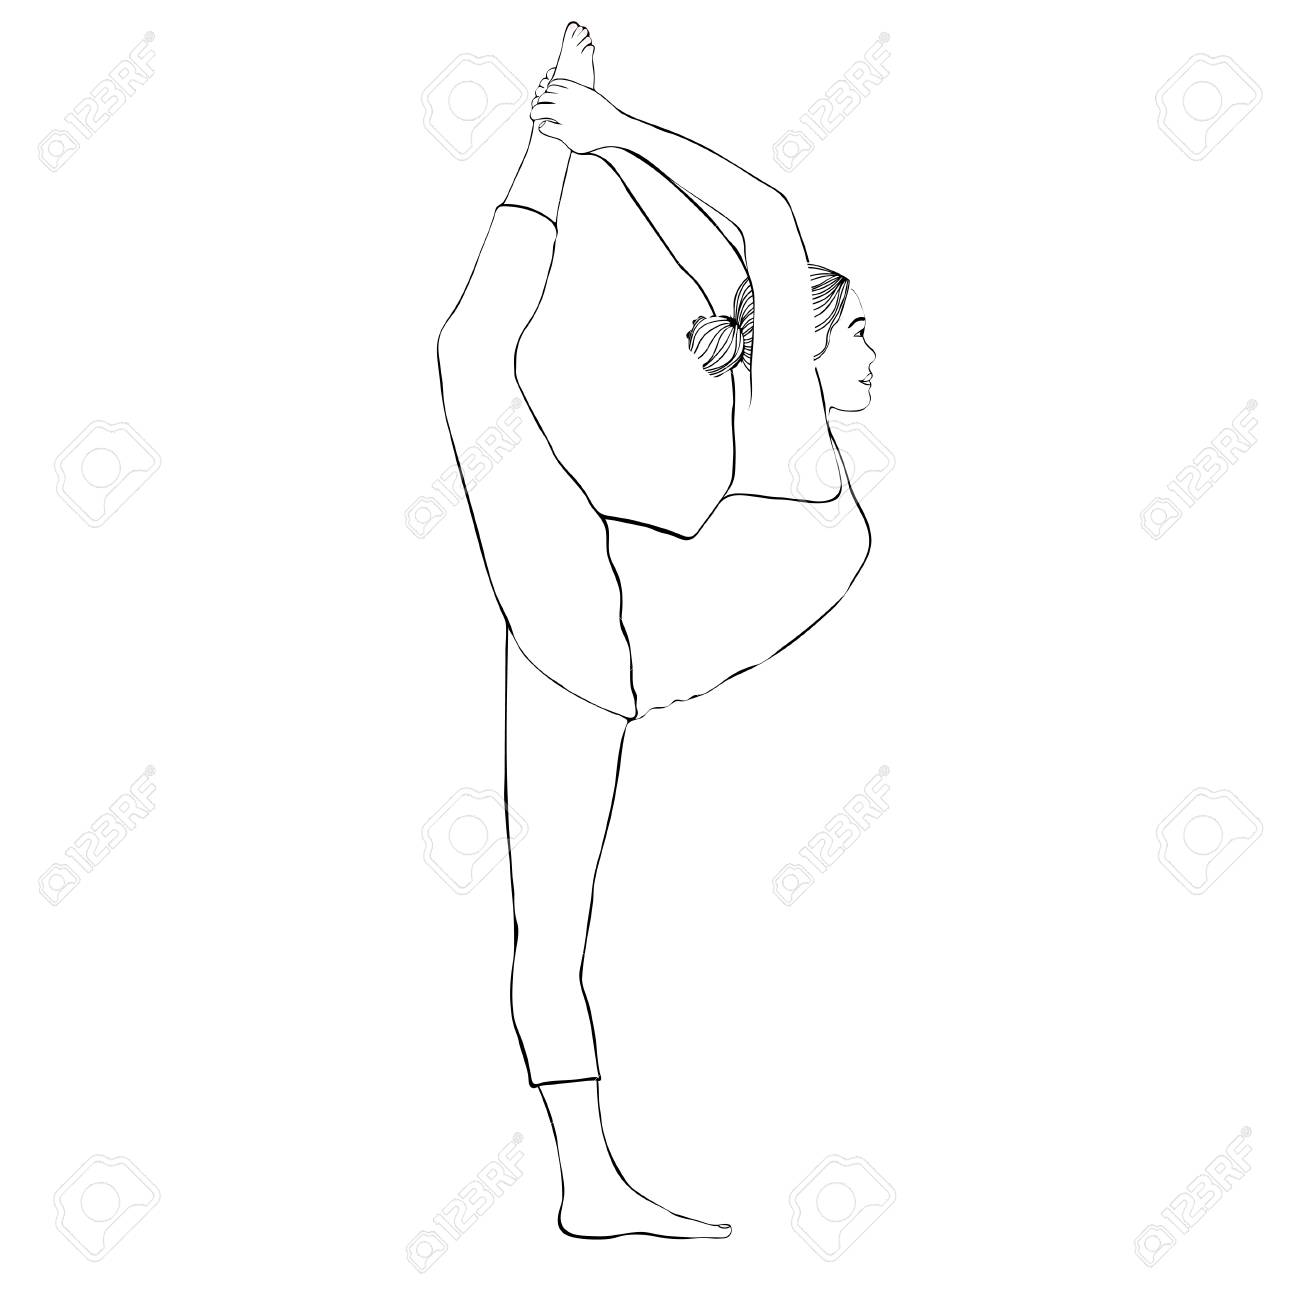 how to draw a girl doing the splits leg split stock images royalty free images vectors how to a draw doing splits the girl